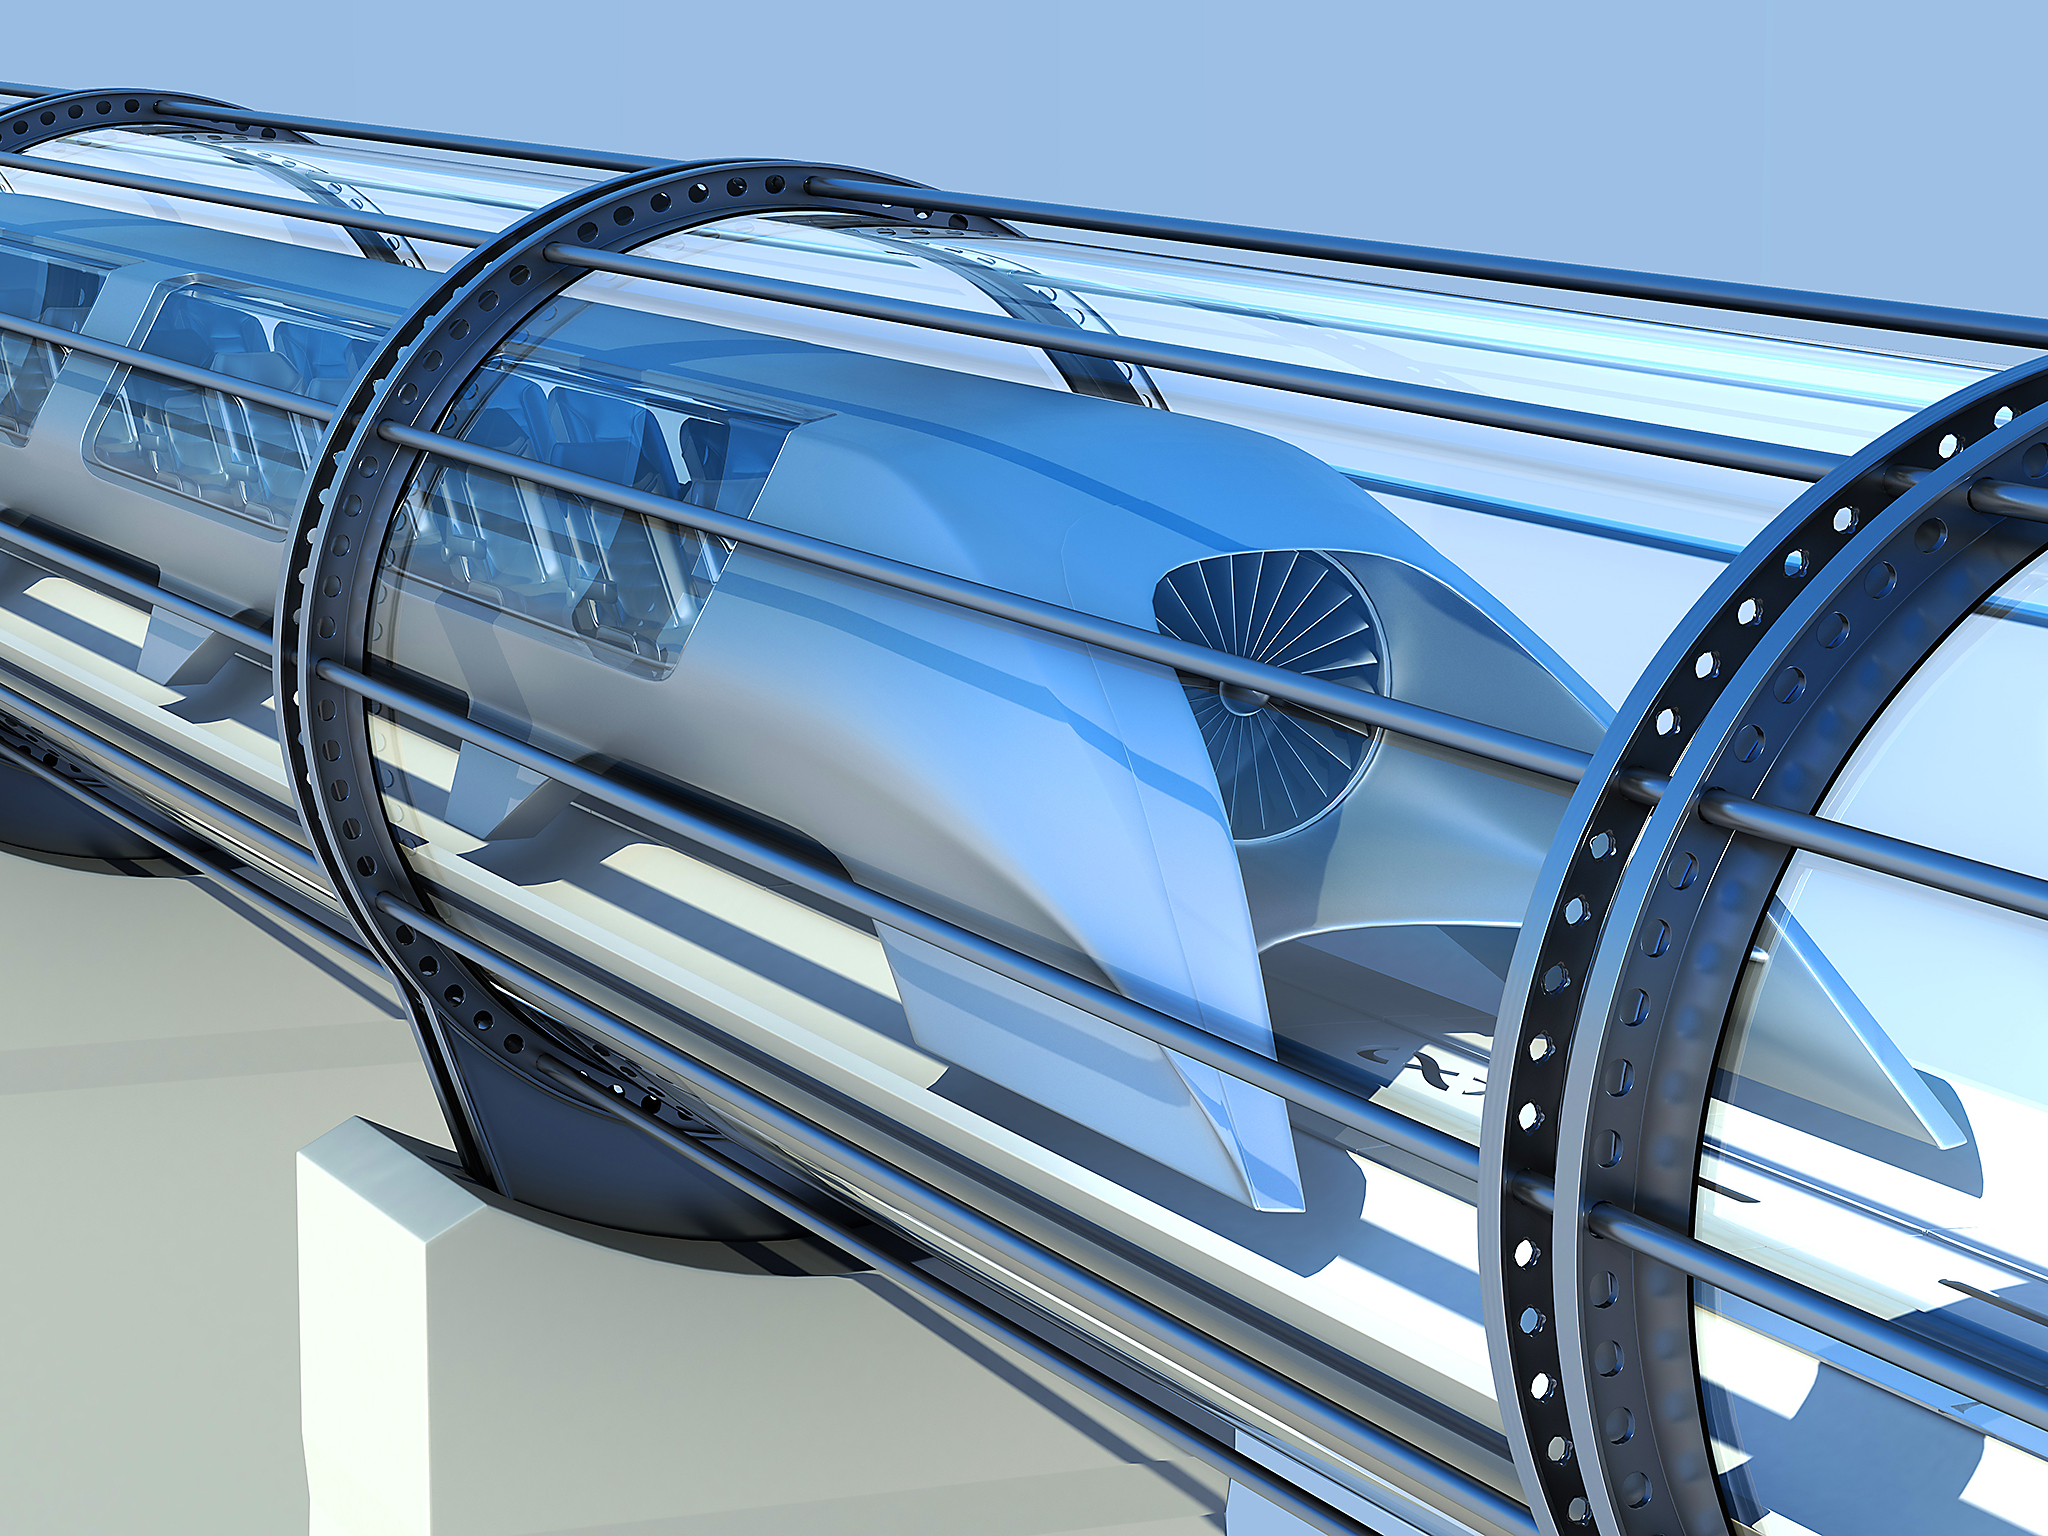 Hyperloop Technology Development